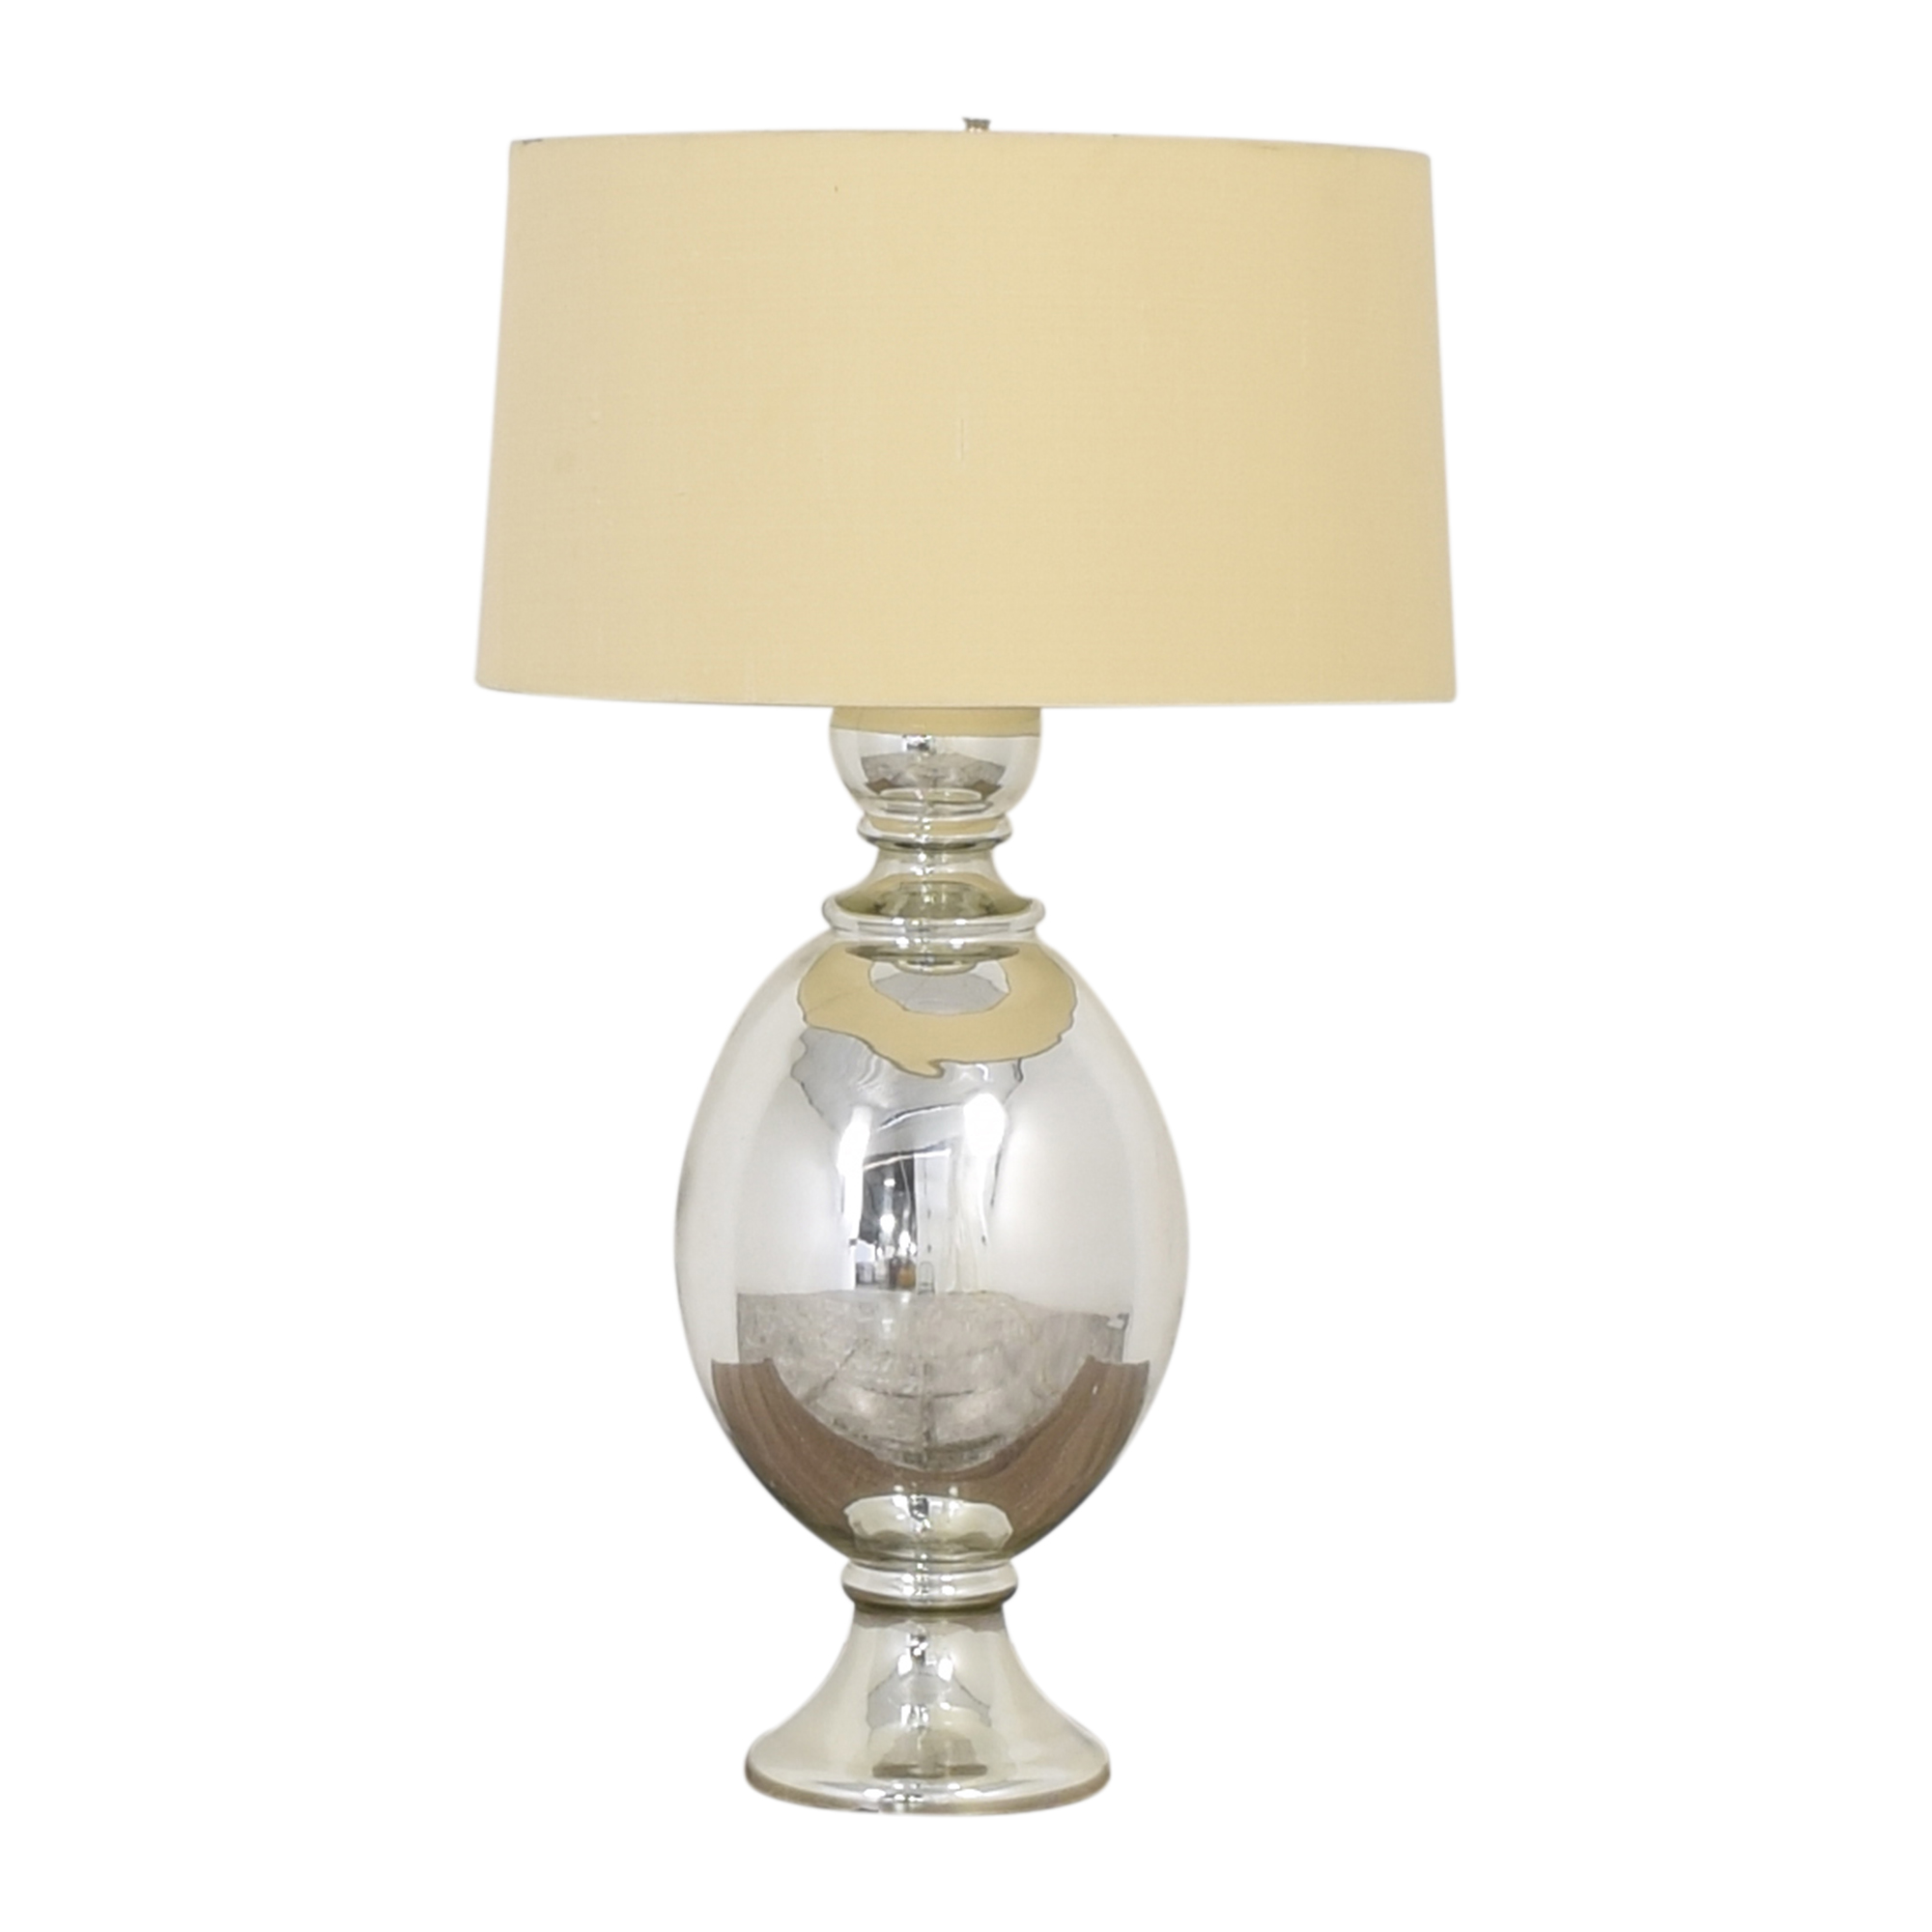 ABC Carpet & Home Decorative Table Lamp ma